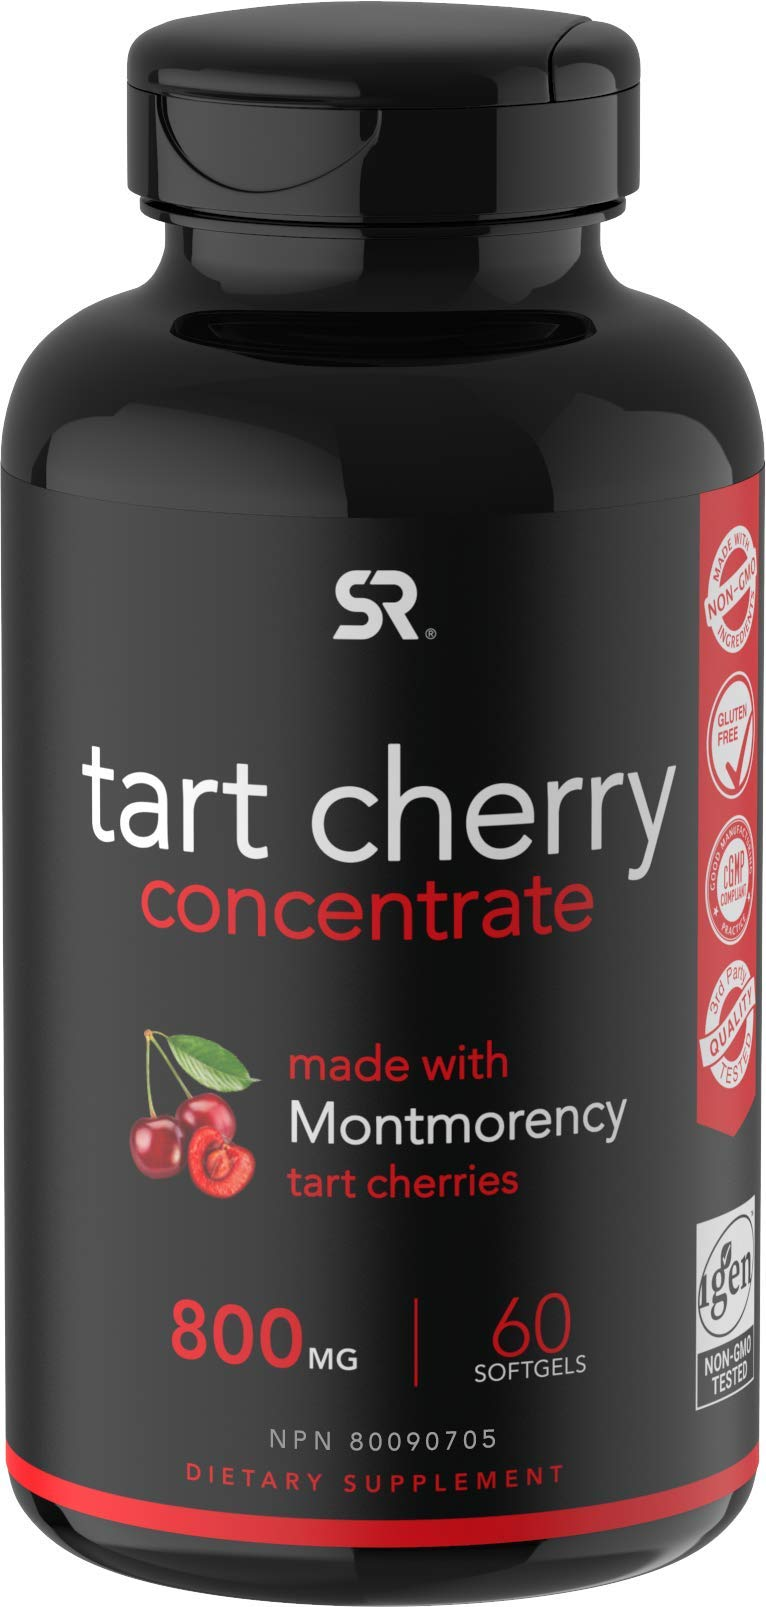 Tart Cherry Concentrate - Made from Montmorency Tart Cherries; Non-GMO & Gluten Free (60 Liquid Softgels)